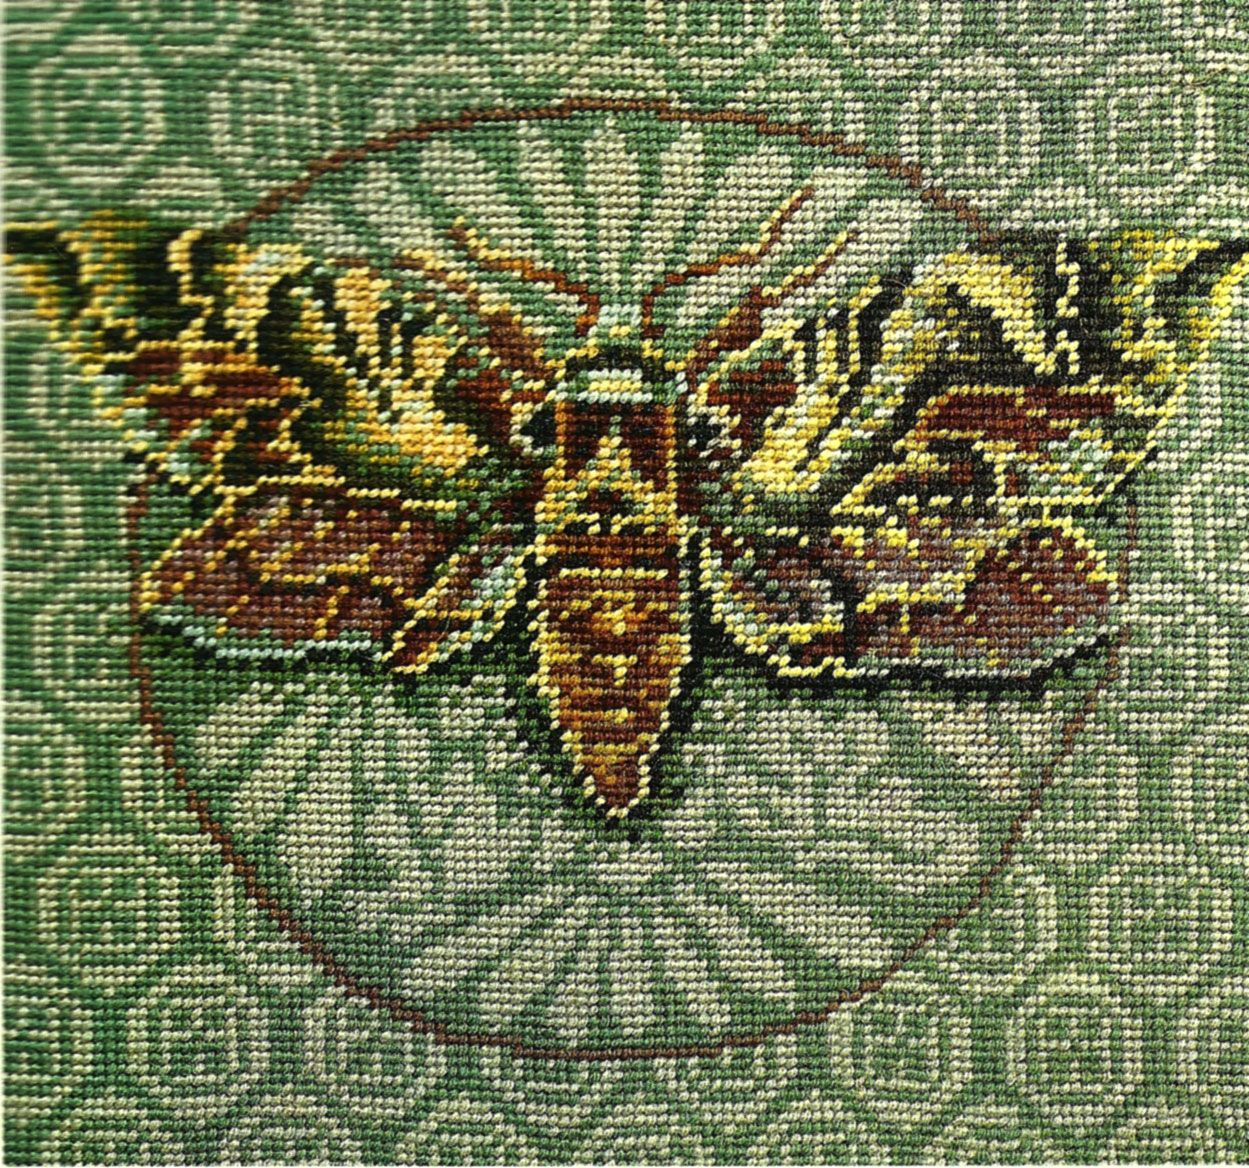 Review Thriller Movie Silence Lambs likewise Harry Potter Skulls And Snakes besides 105060603779184380 furthermore Killer 20moth further 280390689695. on silence of lambs moth